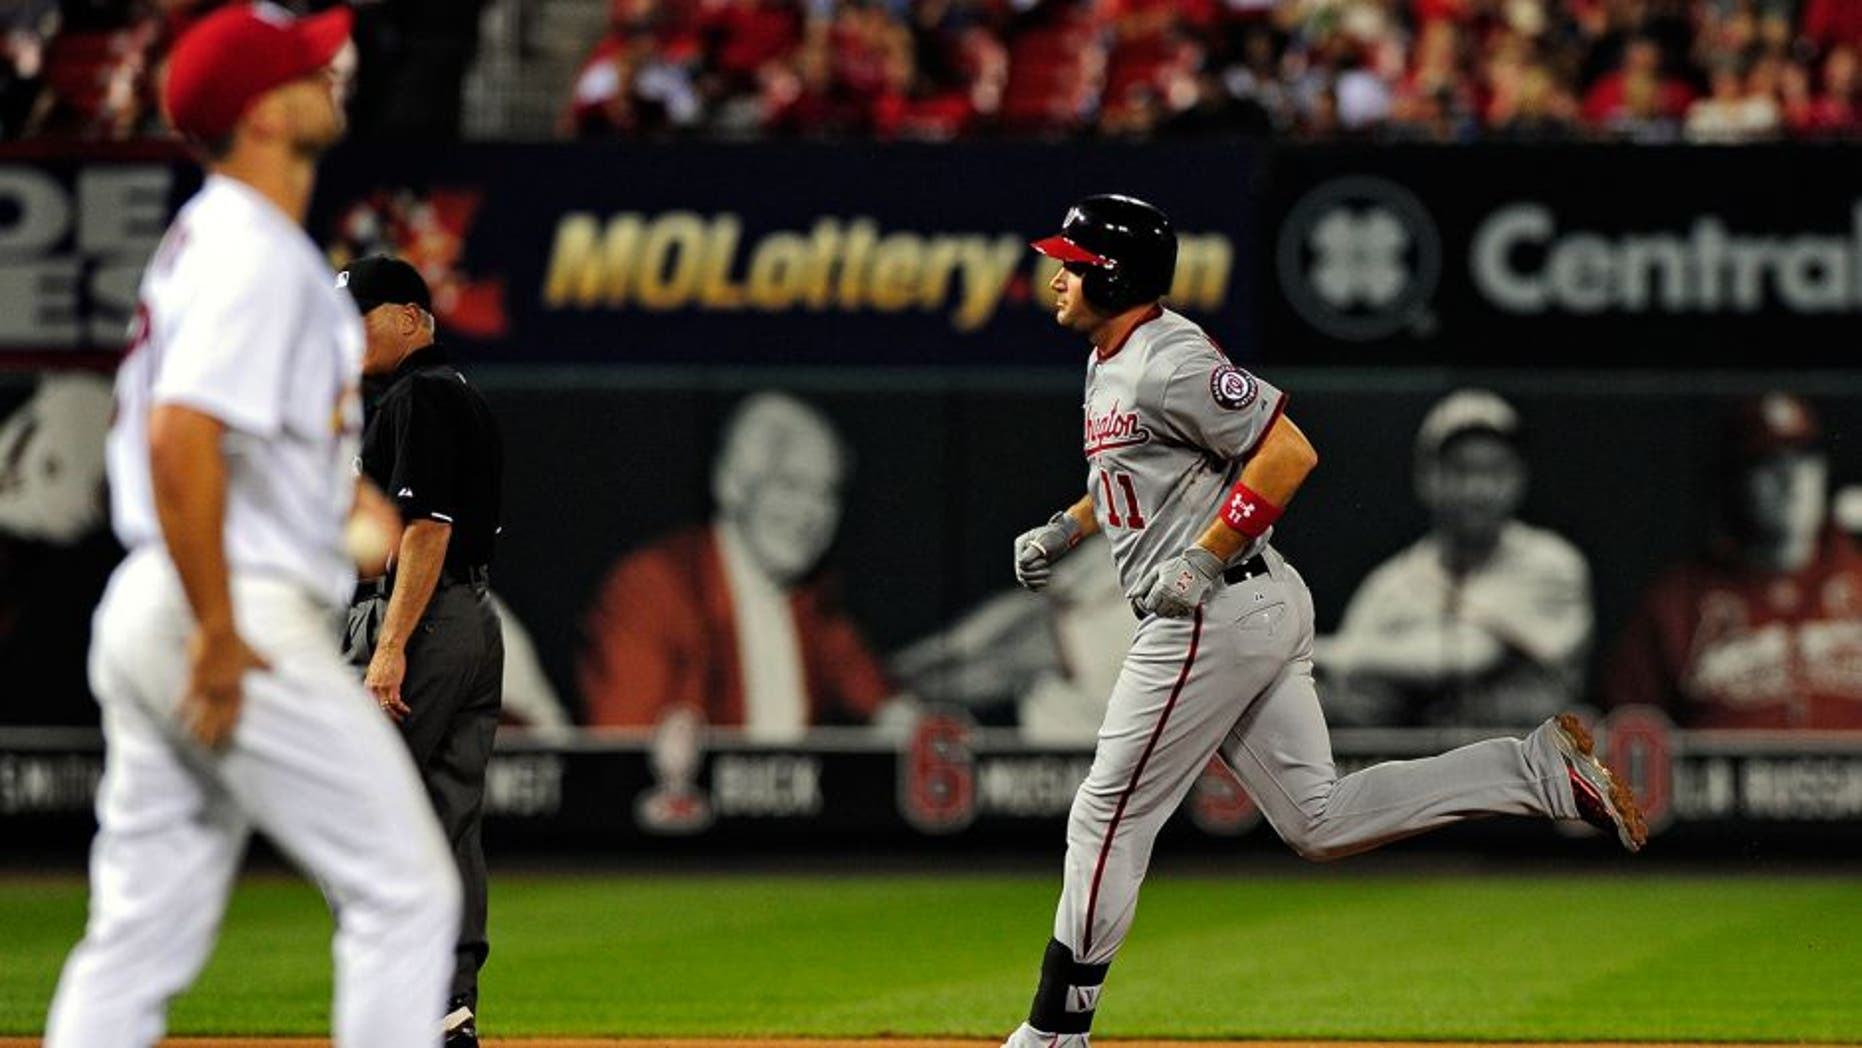 Sep 2, 2015; St. Louis, MO, USA; Washington Nationals first baseman Ryan Zimmerman (11) runs the bases after hitting his second solo home run off of St. Louis Cardinals starting pitcher Tyler Lyons (70) during the sixth inning at Busch Stadium. Mandatory Credit: Jeff Curry-USA TODAY Sports